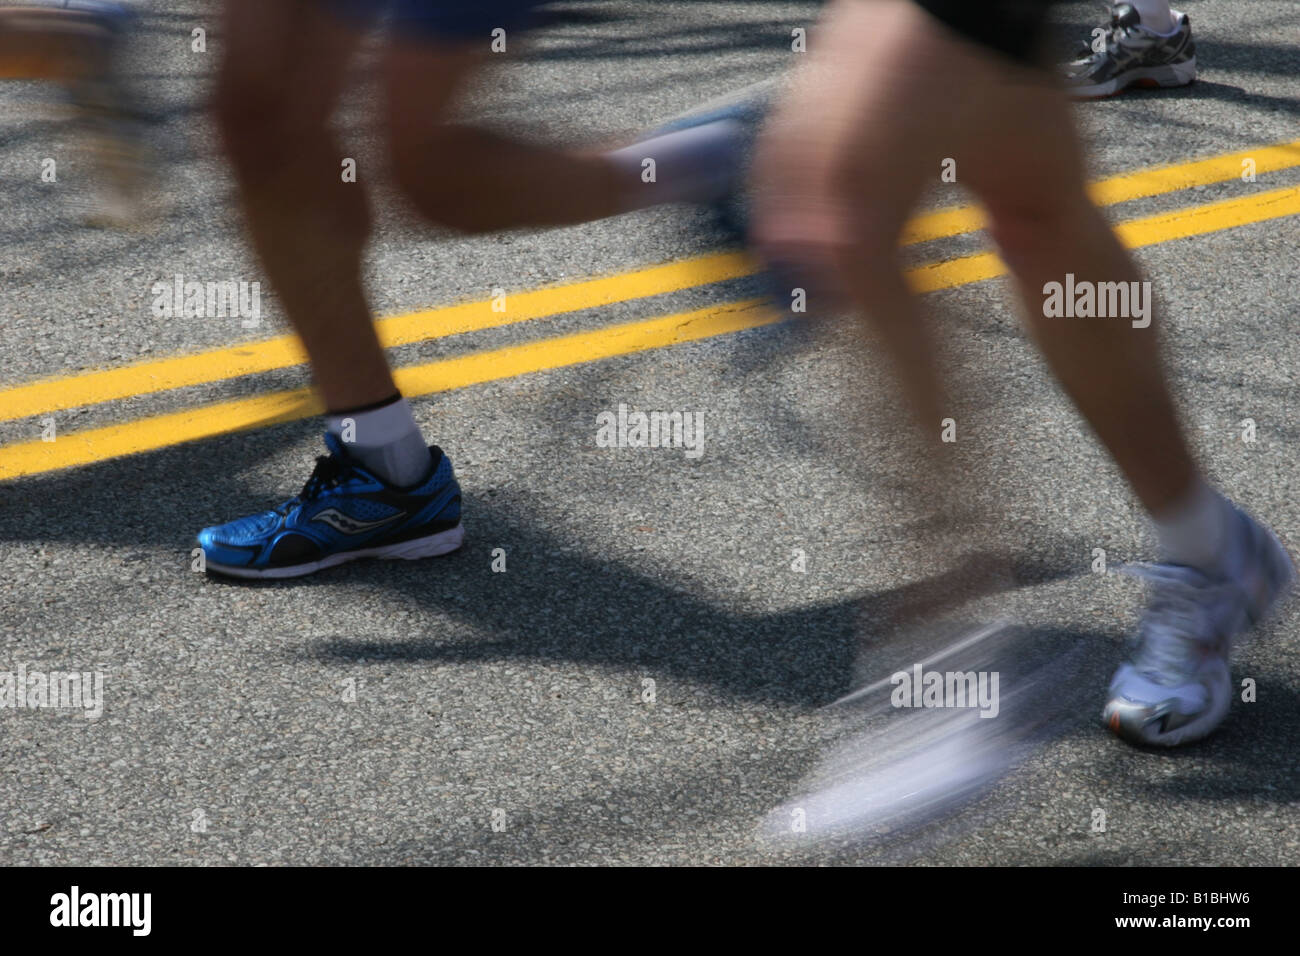 Runners legs at the 2008 Boston Marathon, motion blurred. 21 April 2008, Hopkinton, Massachusetts. - Stock Image